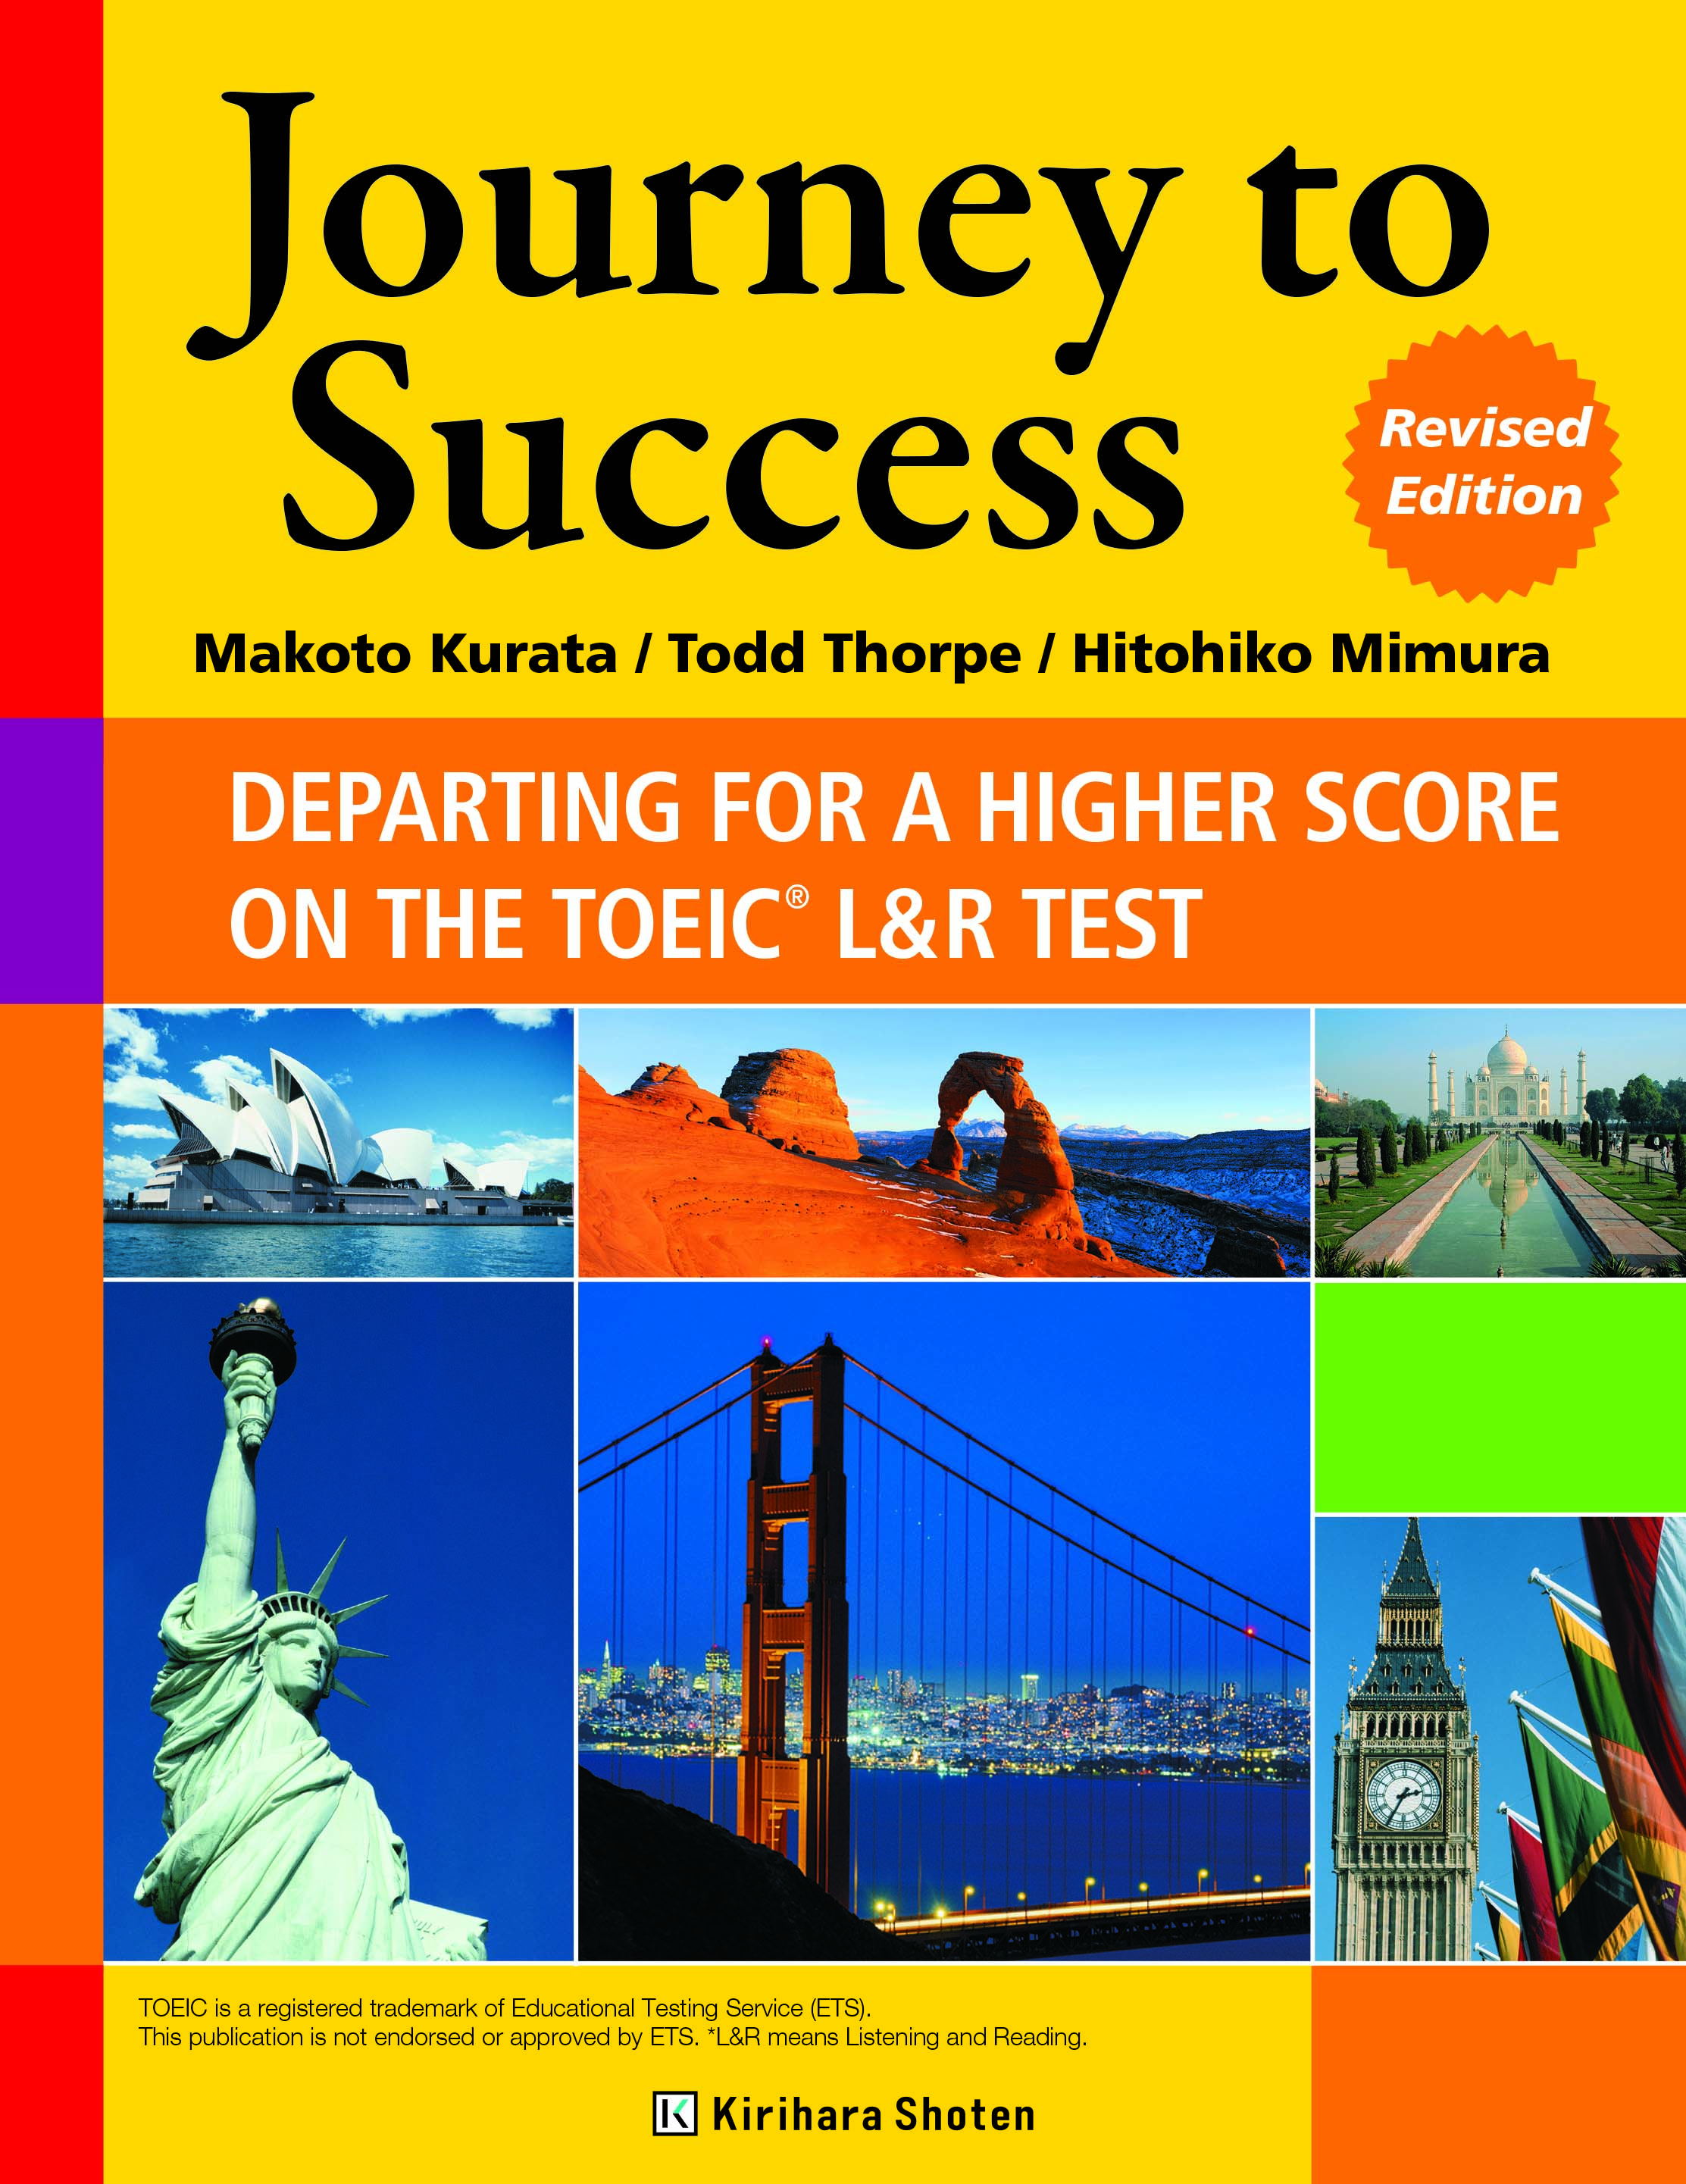 Journey to Success [Revised Edition]